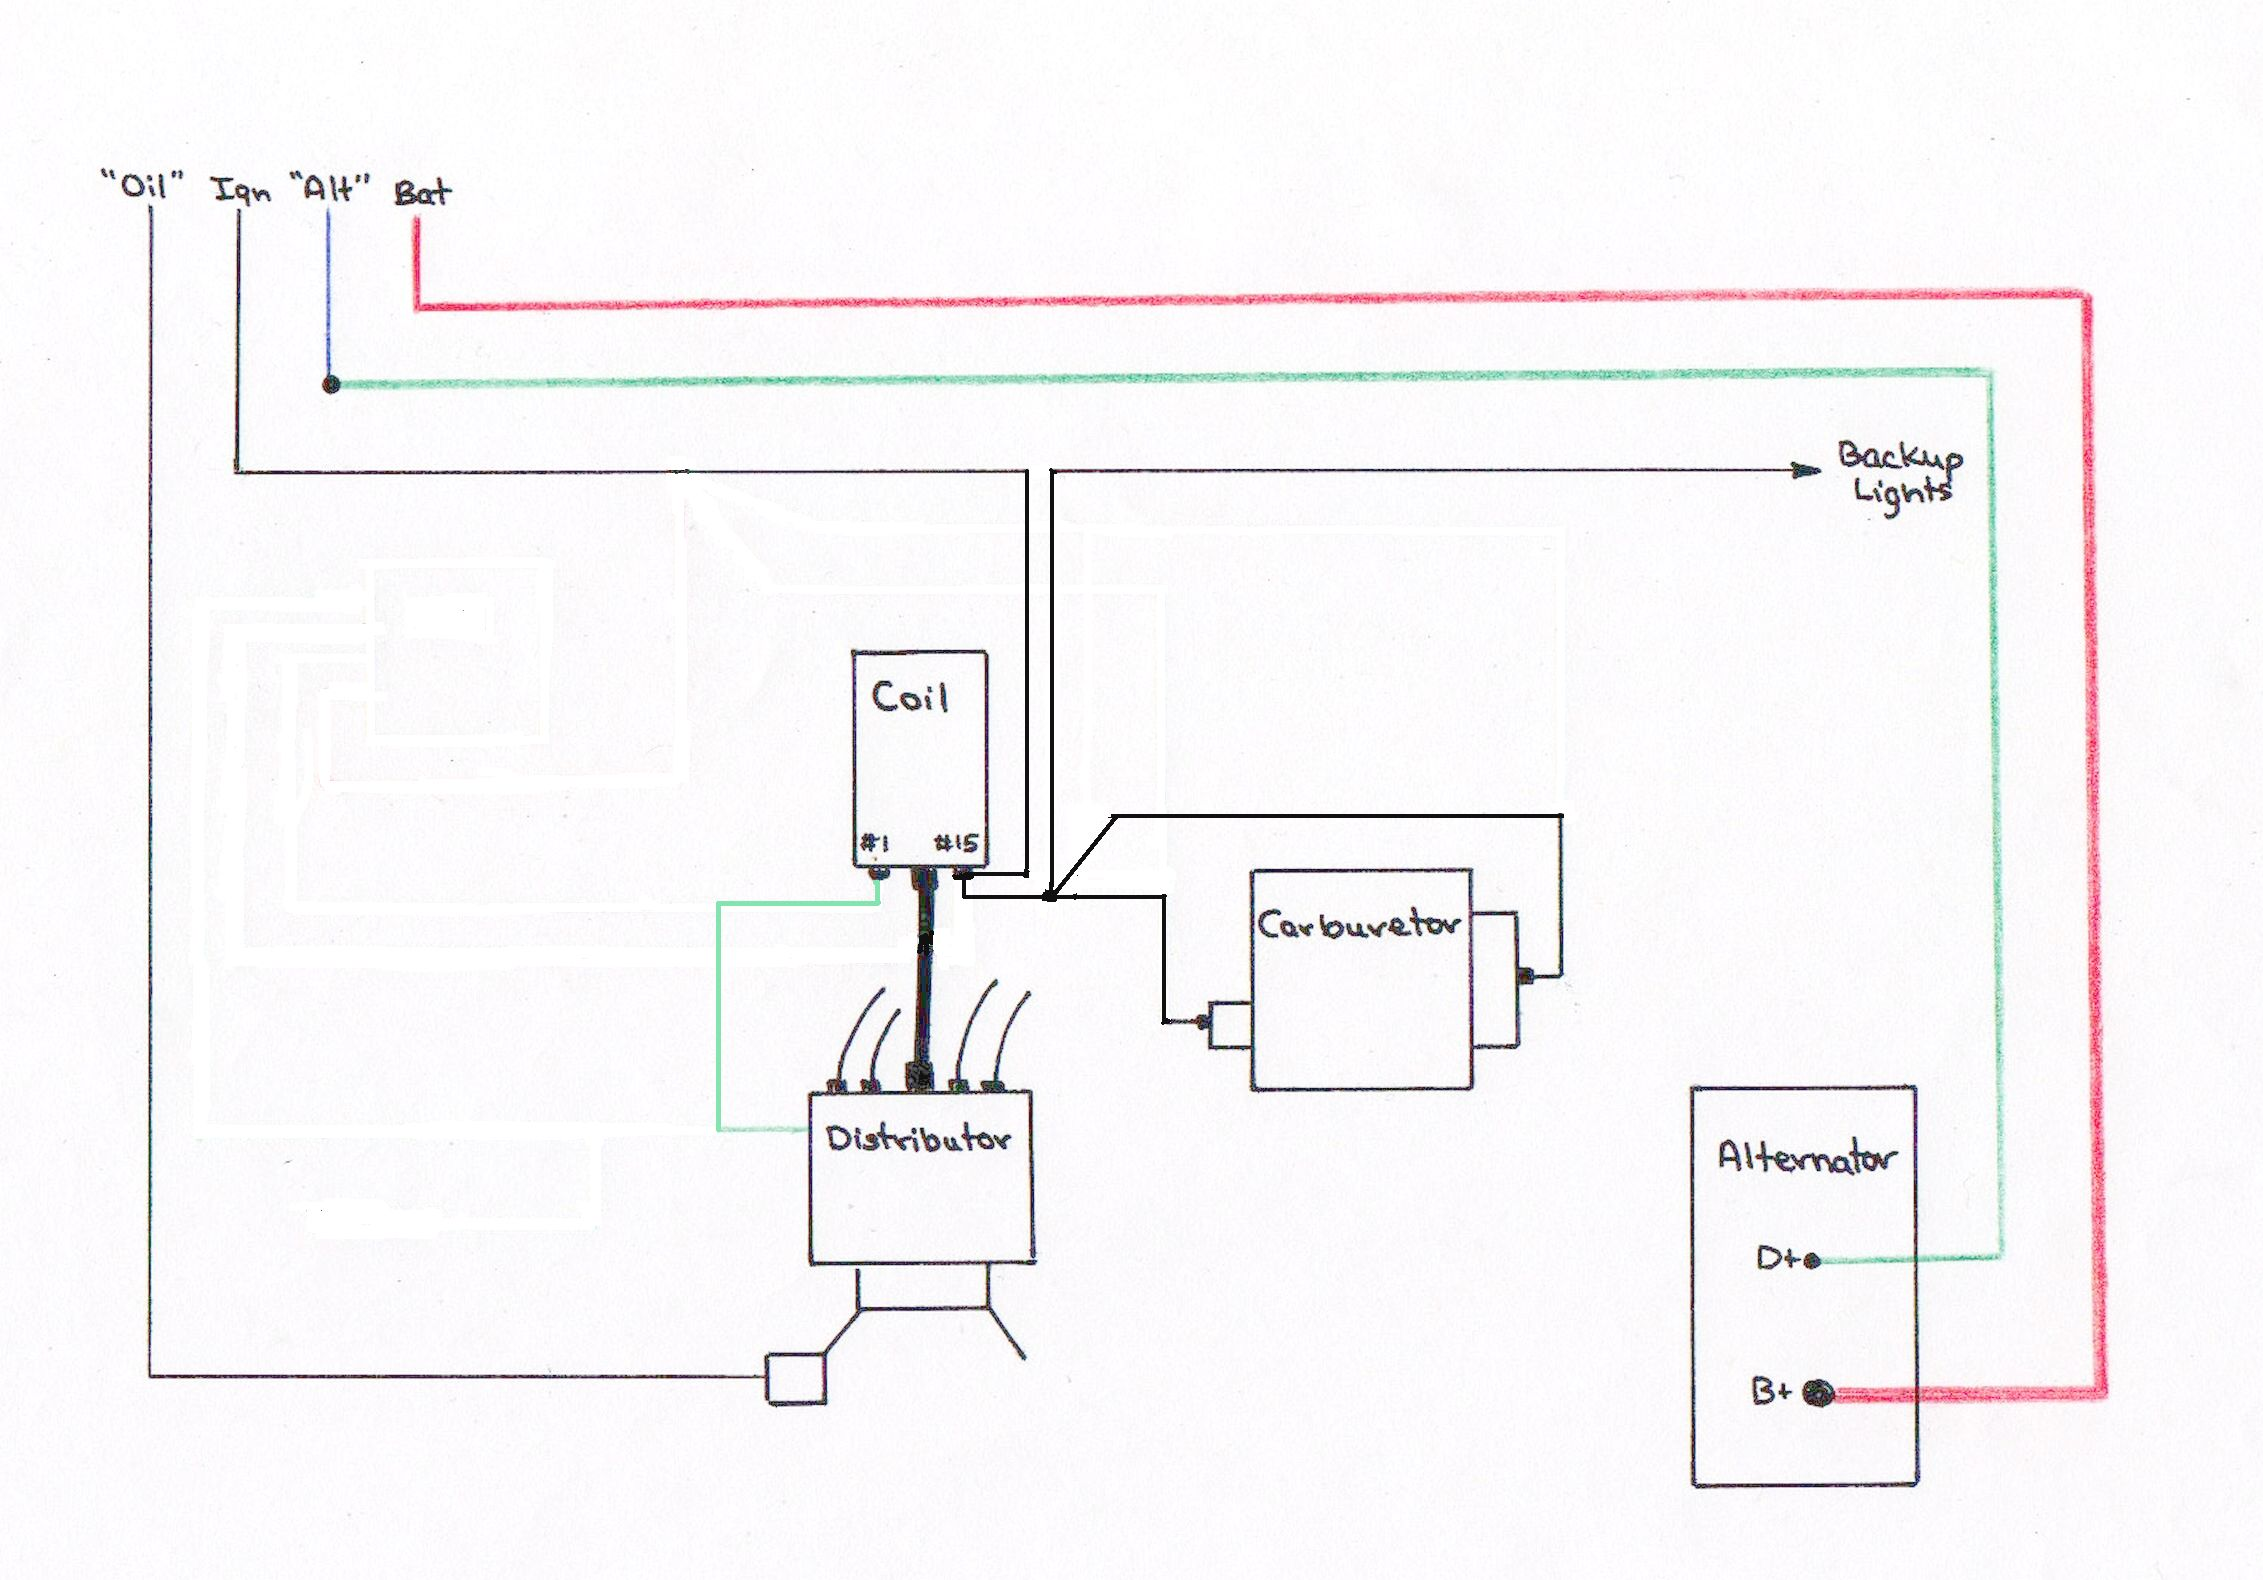 handdrawn_schematic alternator wiring bosch alternator for 1970 vw wiring diagram at aneh.co